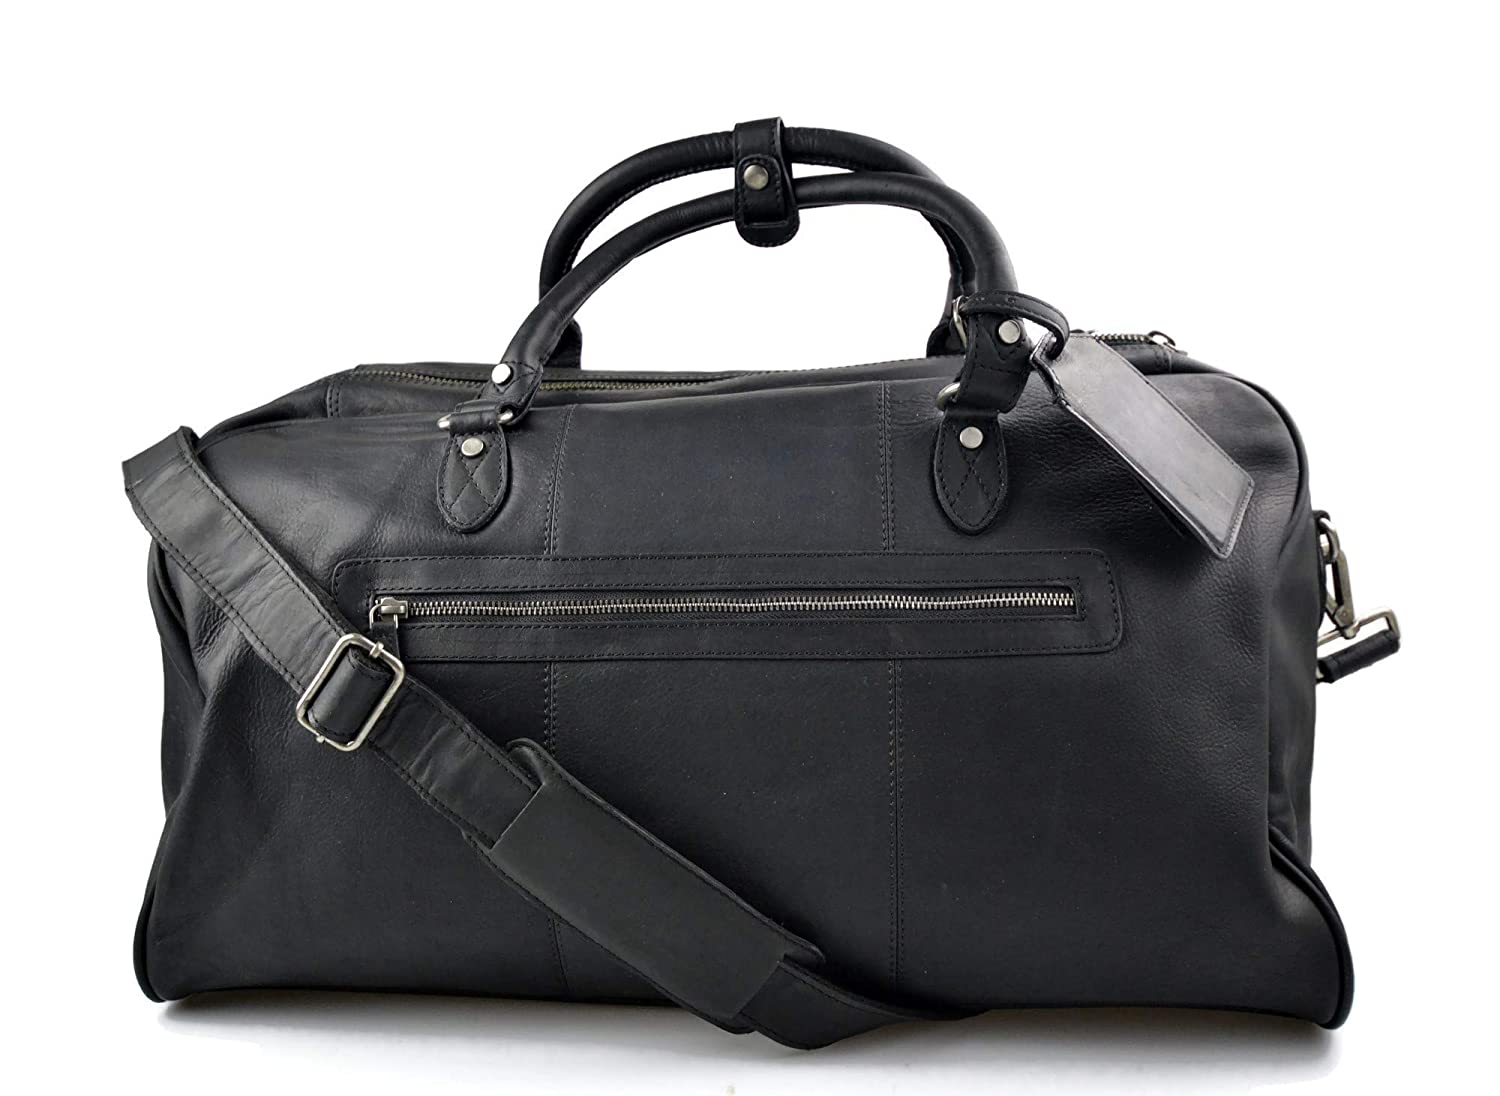 Black Real Leather Travel Duffle Weekend Gym Carry On Bag